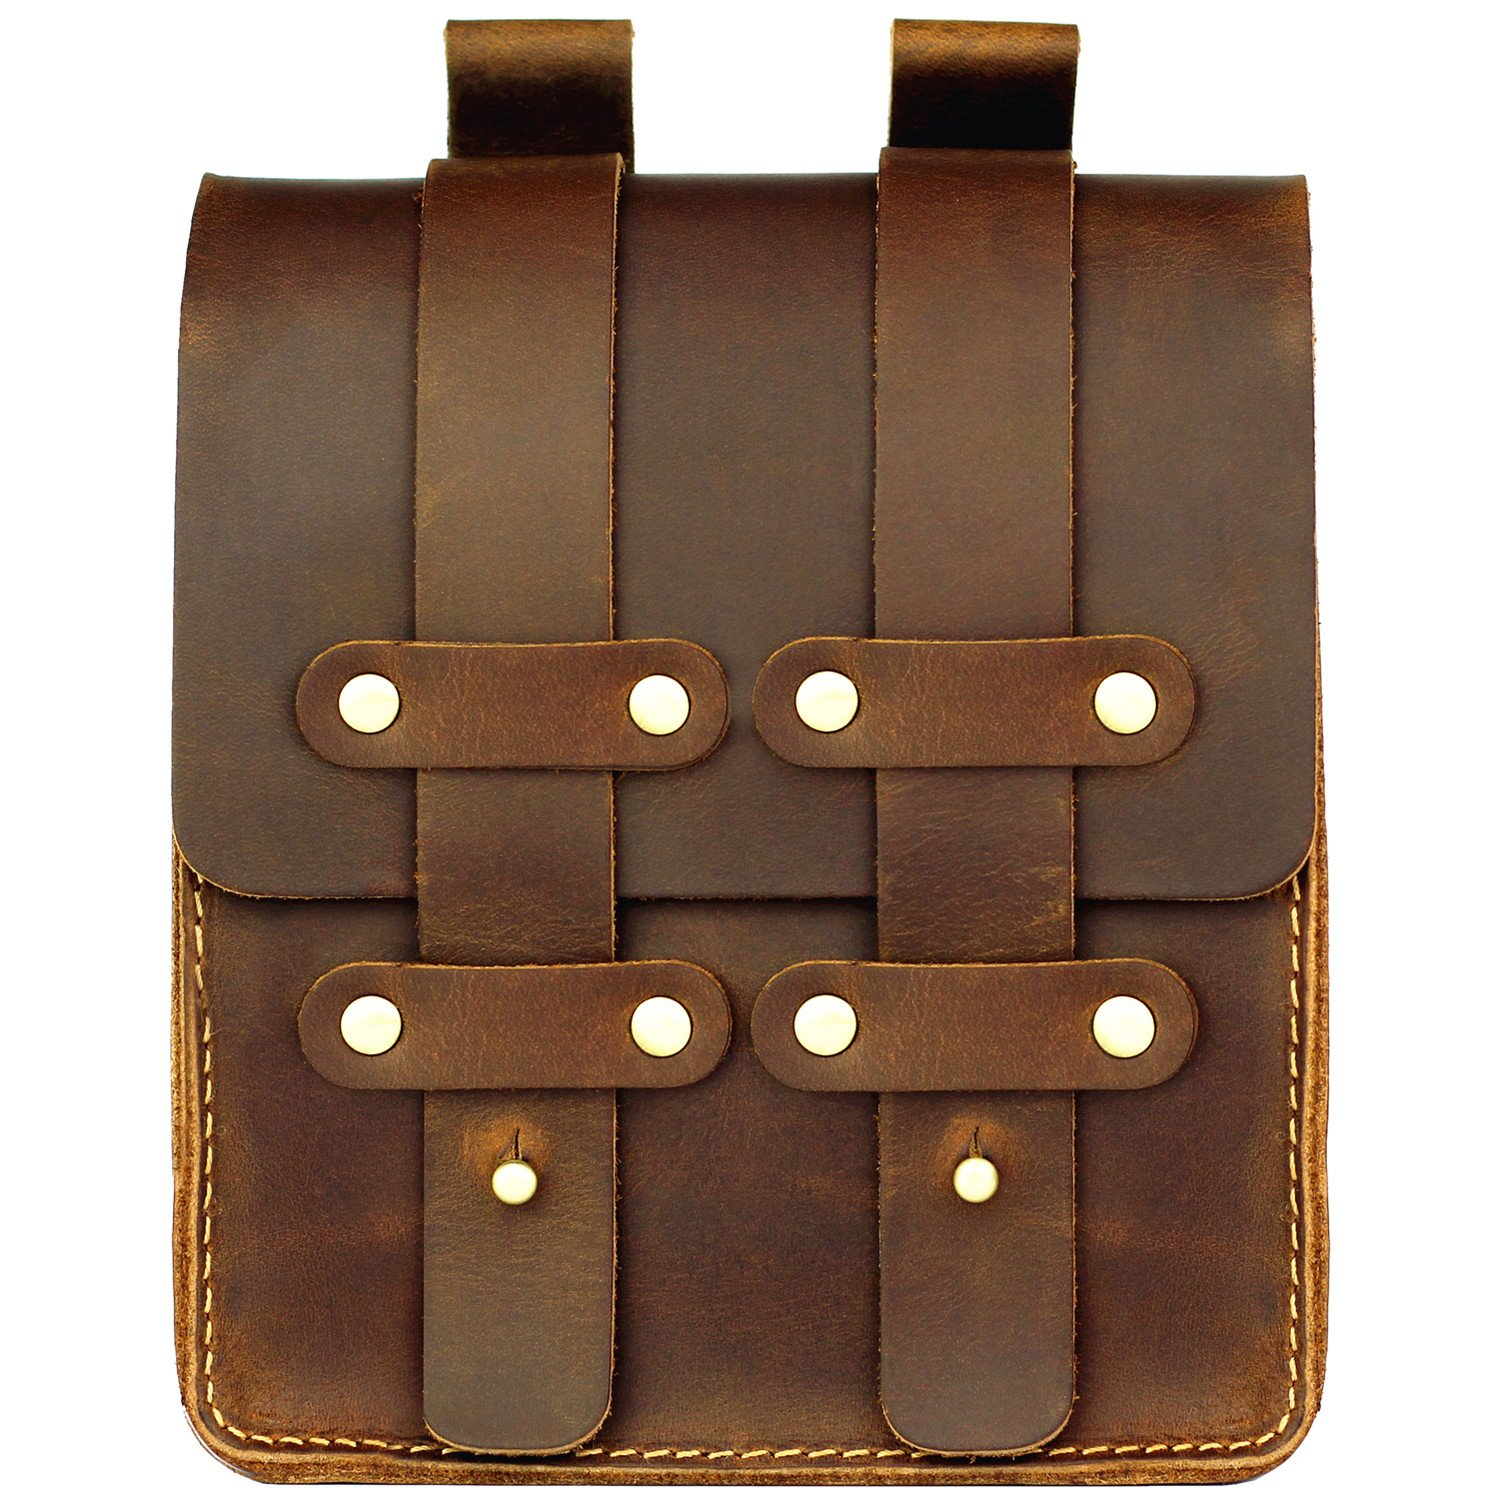 LXFF Mens Genuine Leather Belt Pouch Fanny Pack Waist Bag Bum Bags for Men Vintage Brown Large